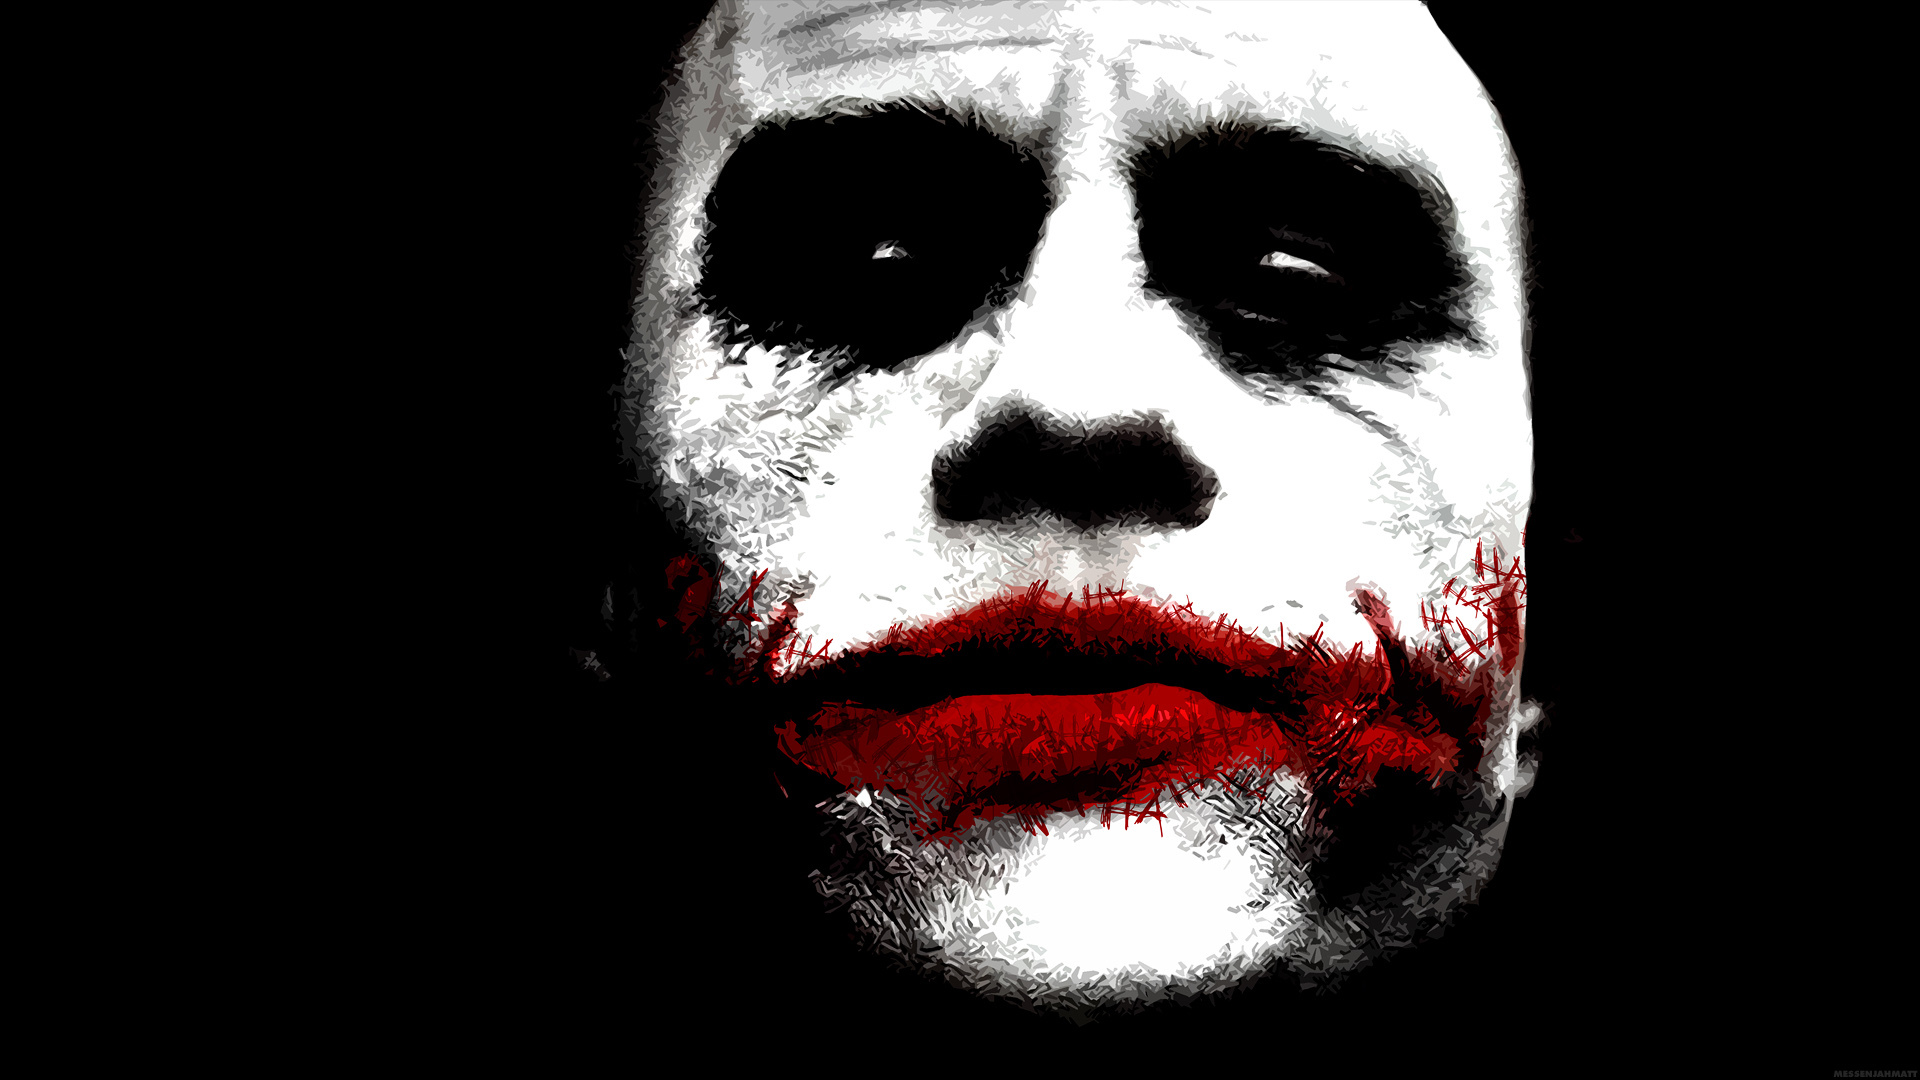 17234 download wallpaper Cinema, Joker screensavers and pictures for free